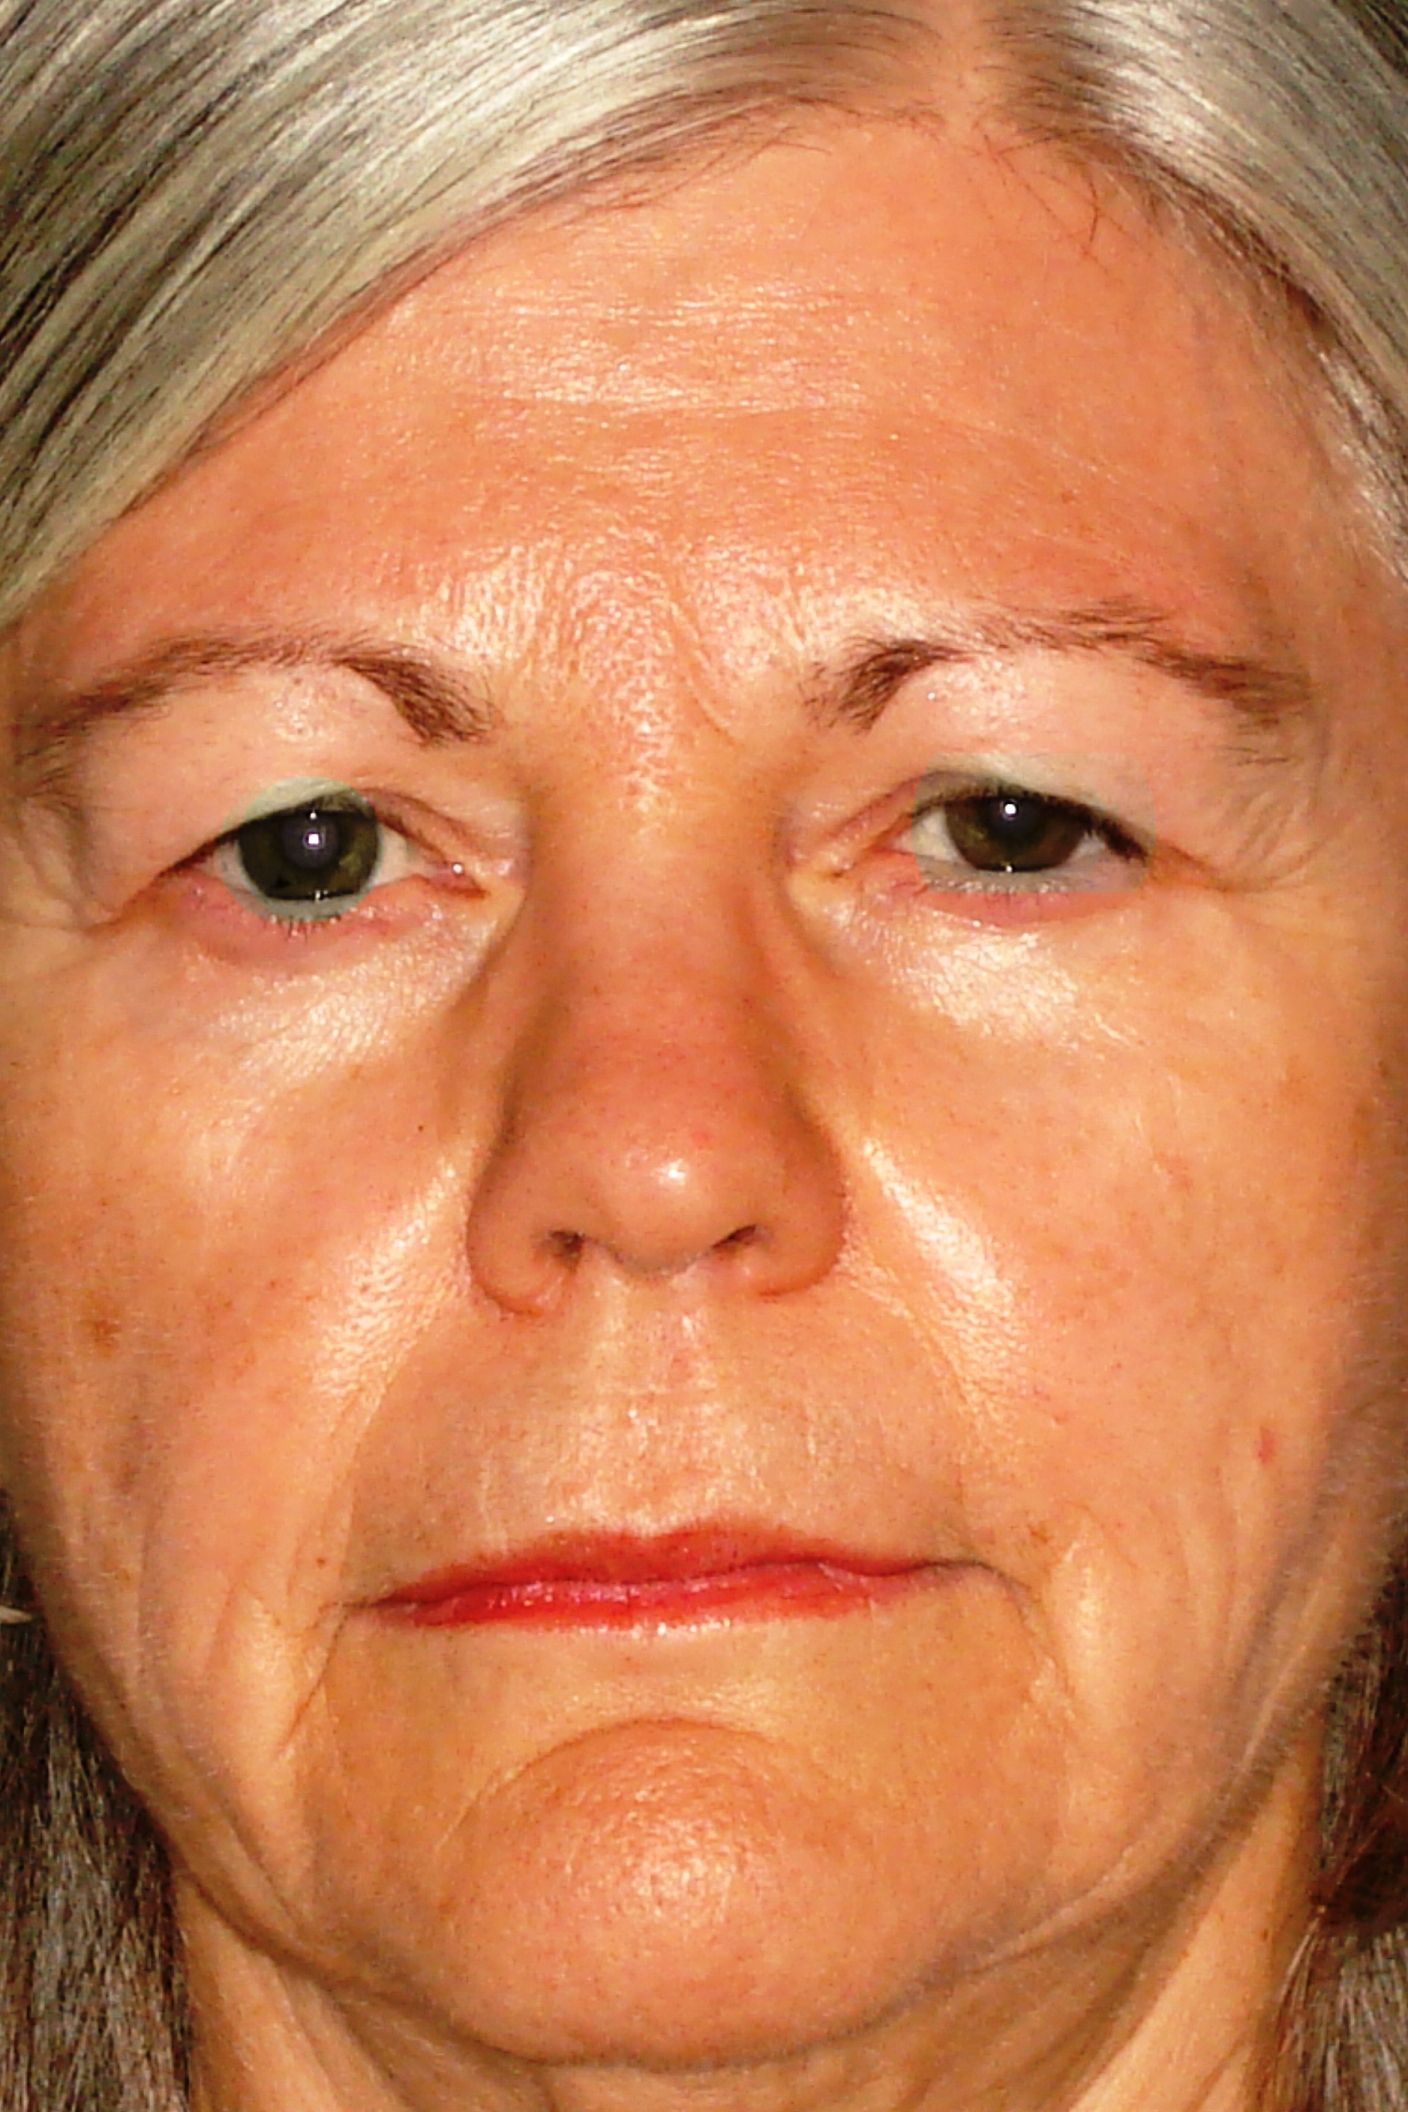 A post-eyelid surgery photo of a female patient